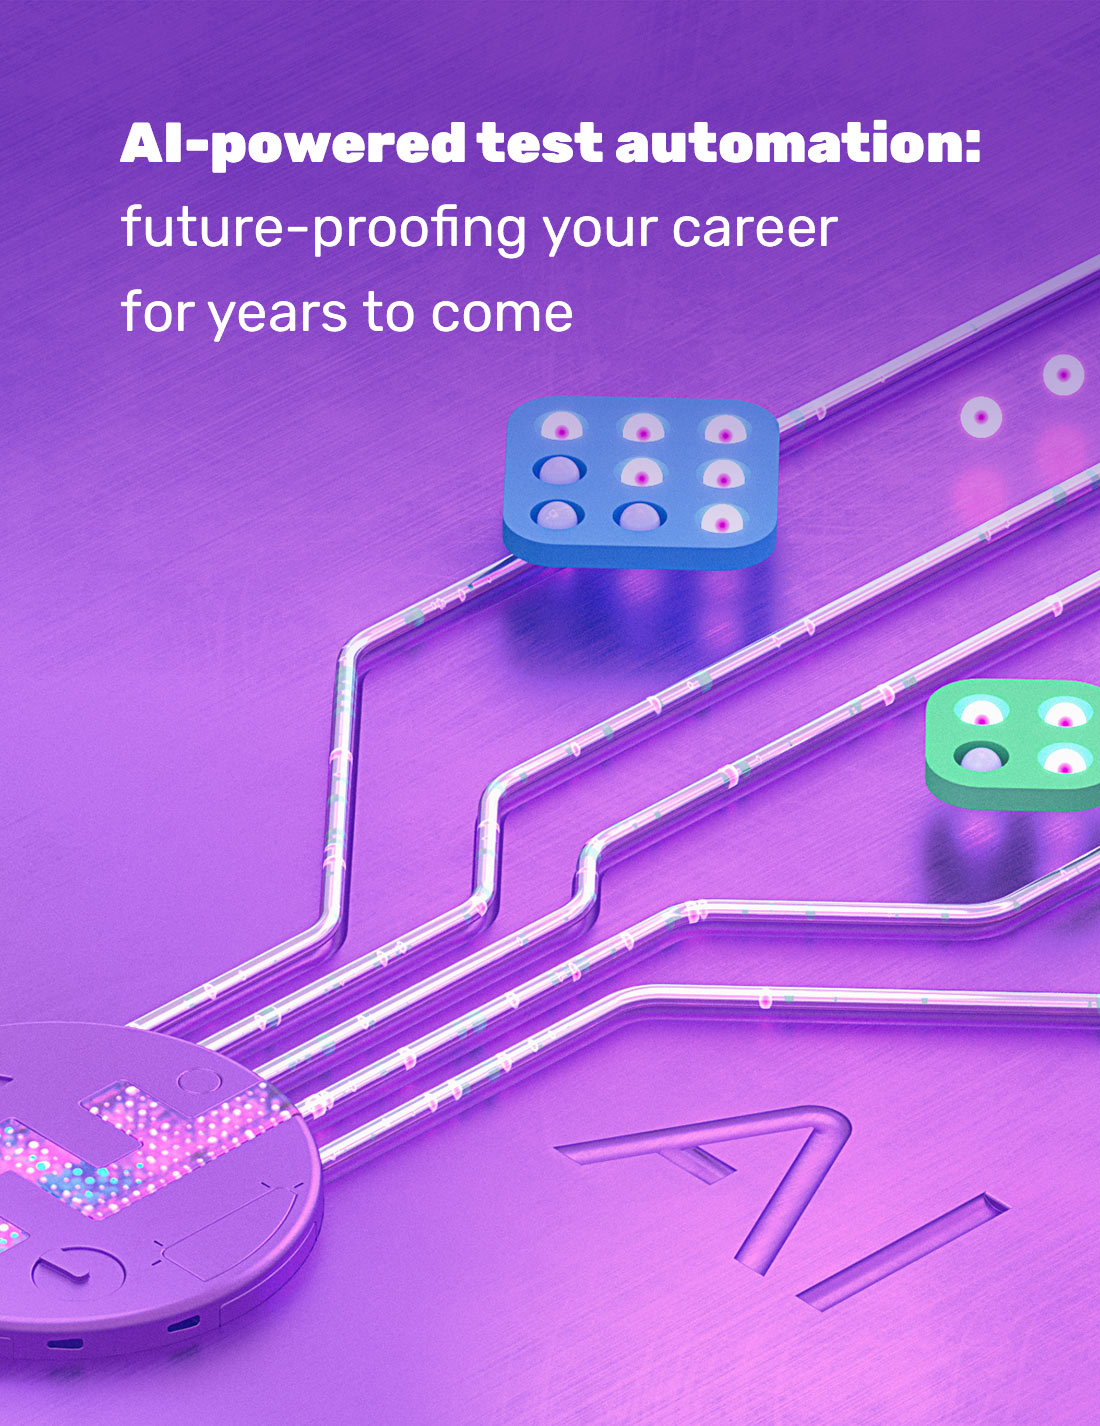 AI-powered test automation: future-proofing your career for years to come